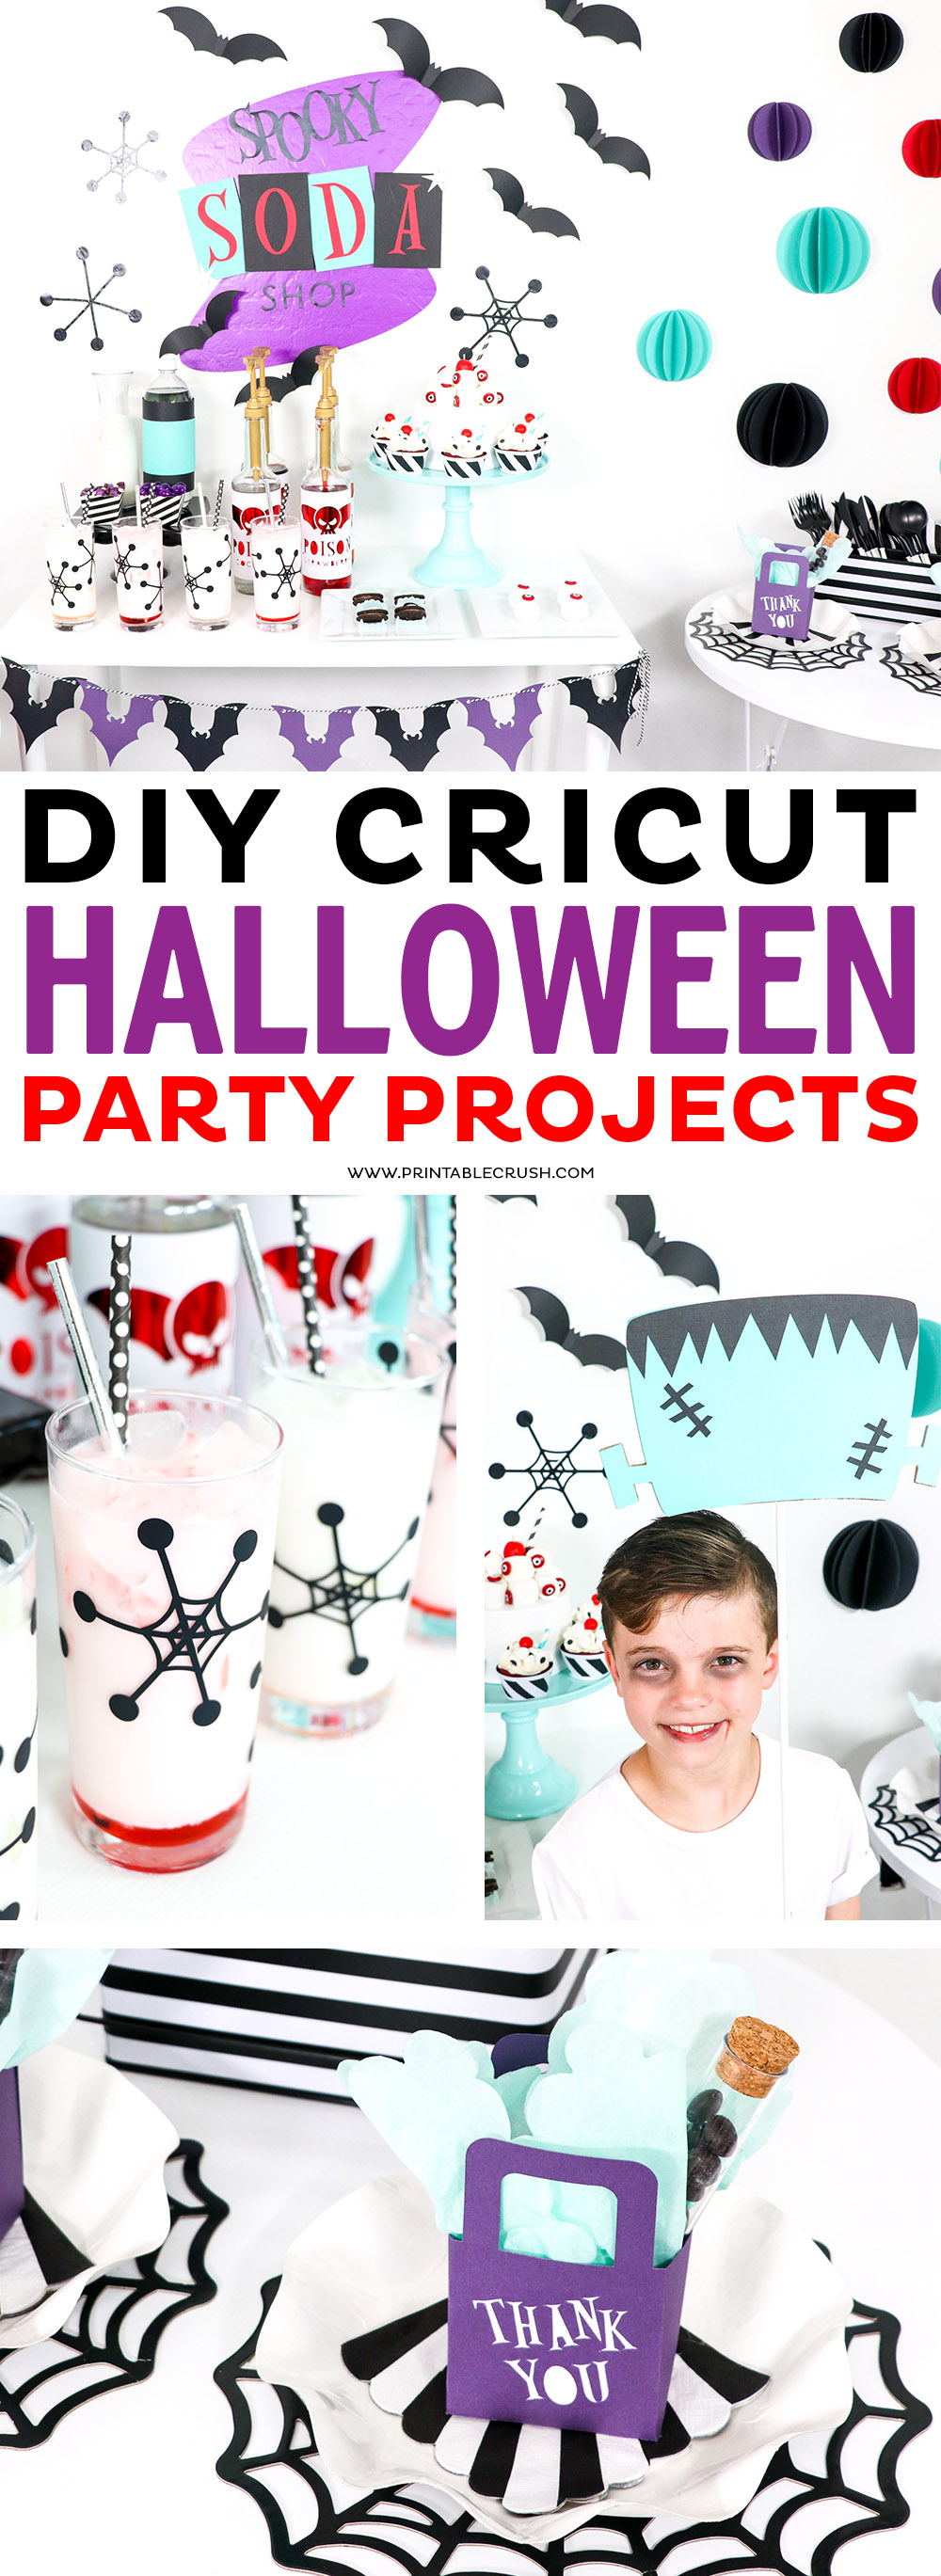 These DIY Cricut Halloween Party Projects are ready to go in Cricut Design Space. Just click on the link to the project and select MAKE IT or you can customize it! #cricutmade #cricutprojects #sayitwithcricut #halloweenparty